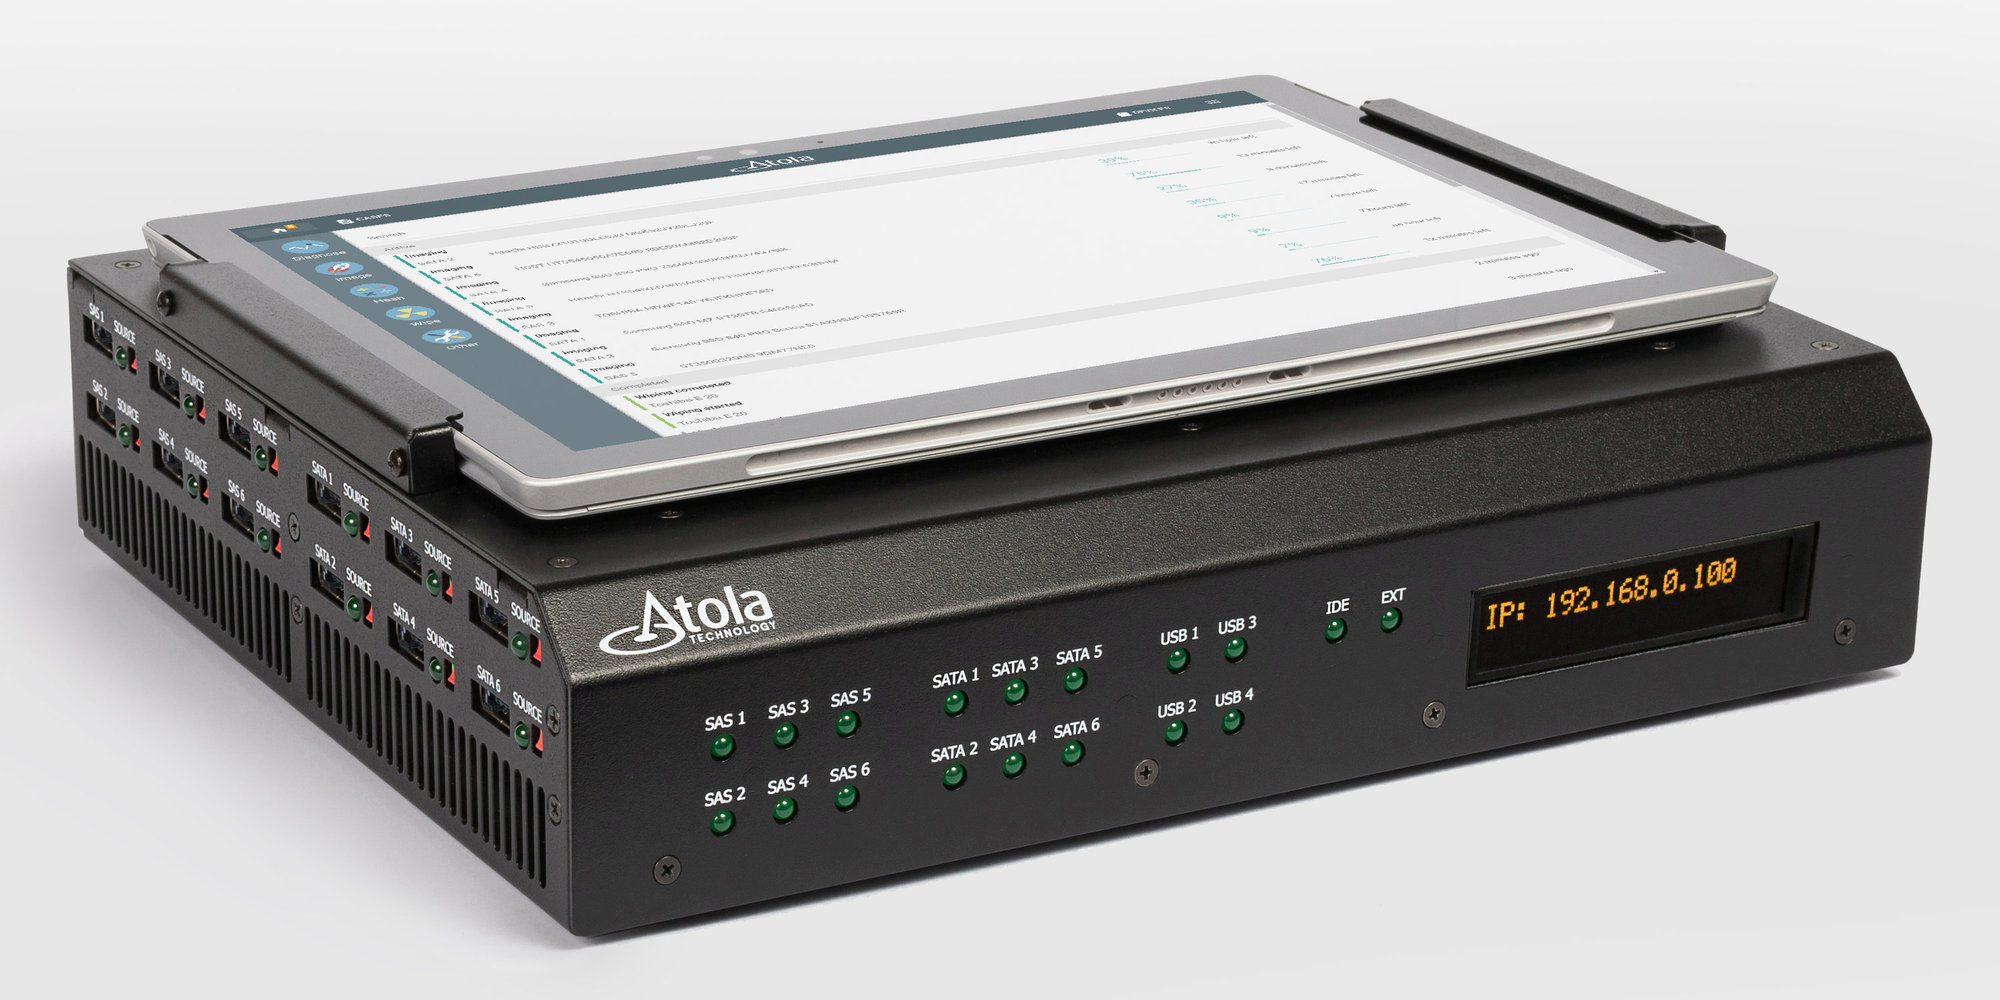 Forensic Imager With 18 Ports